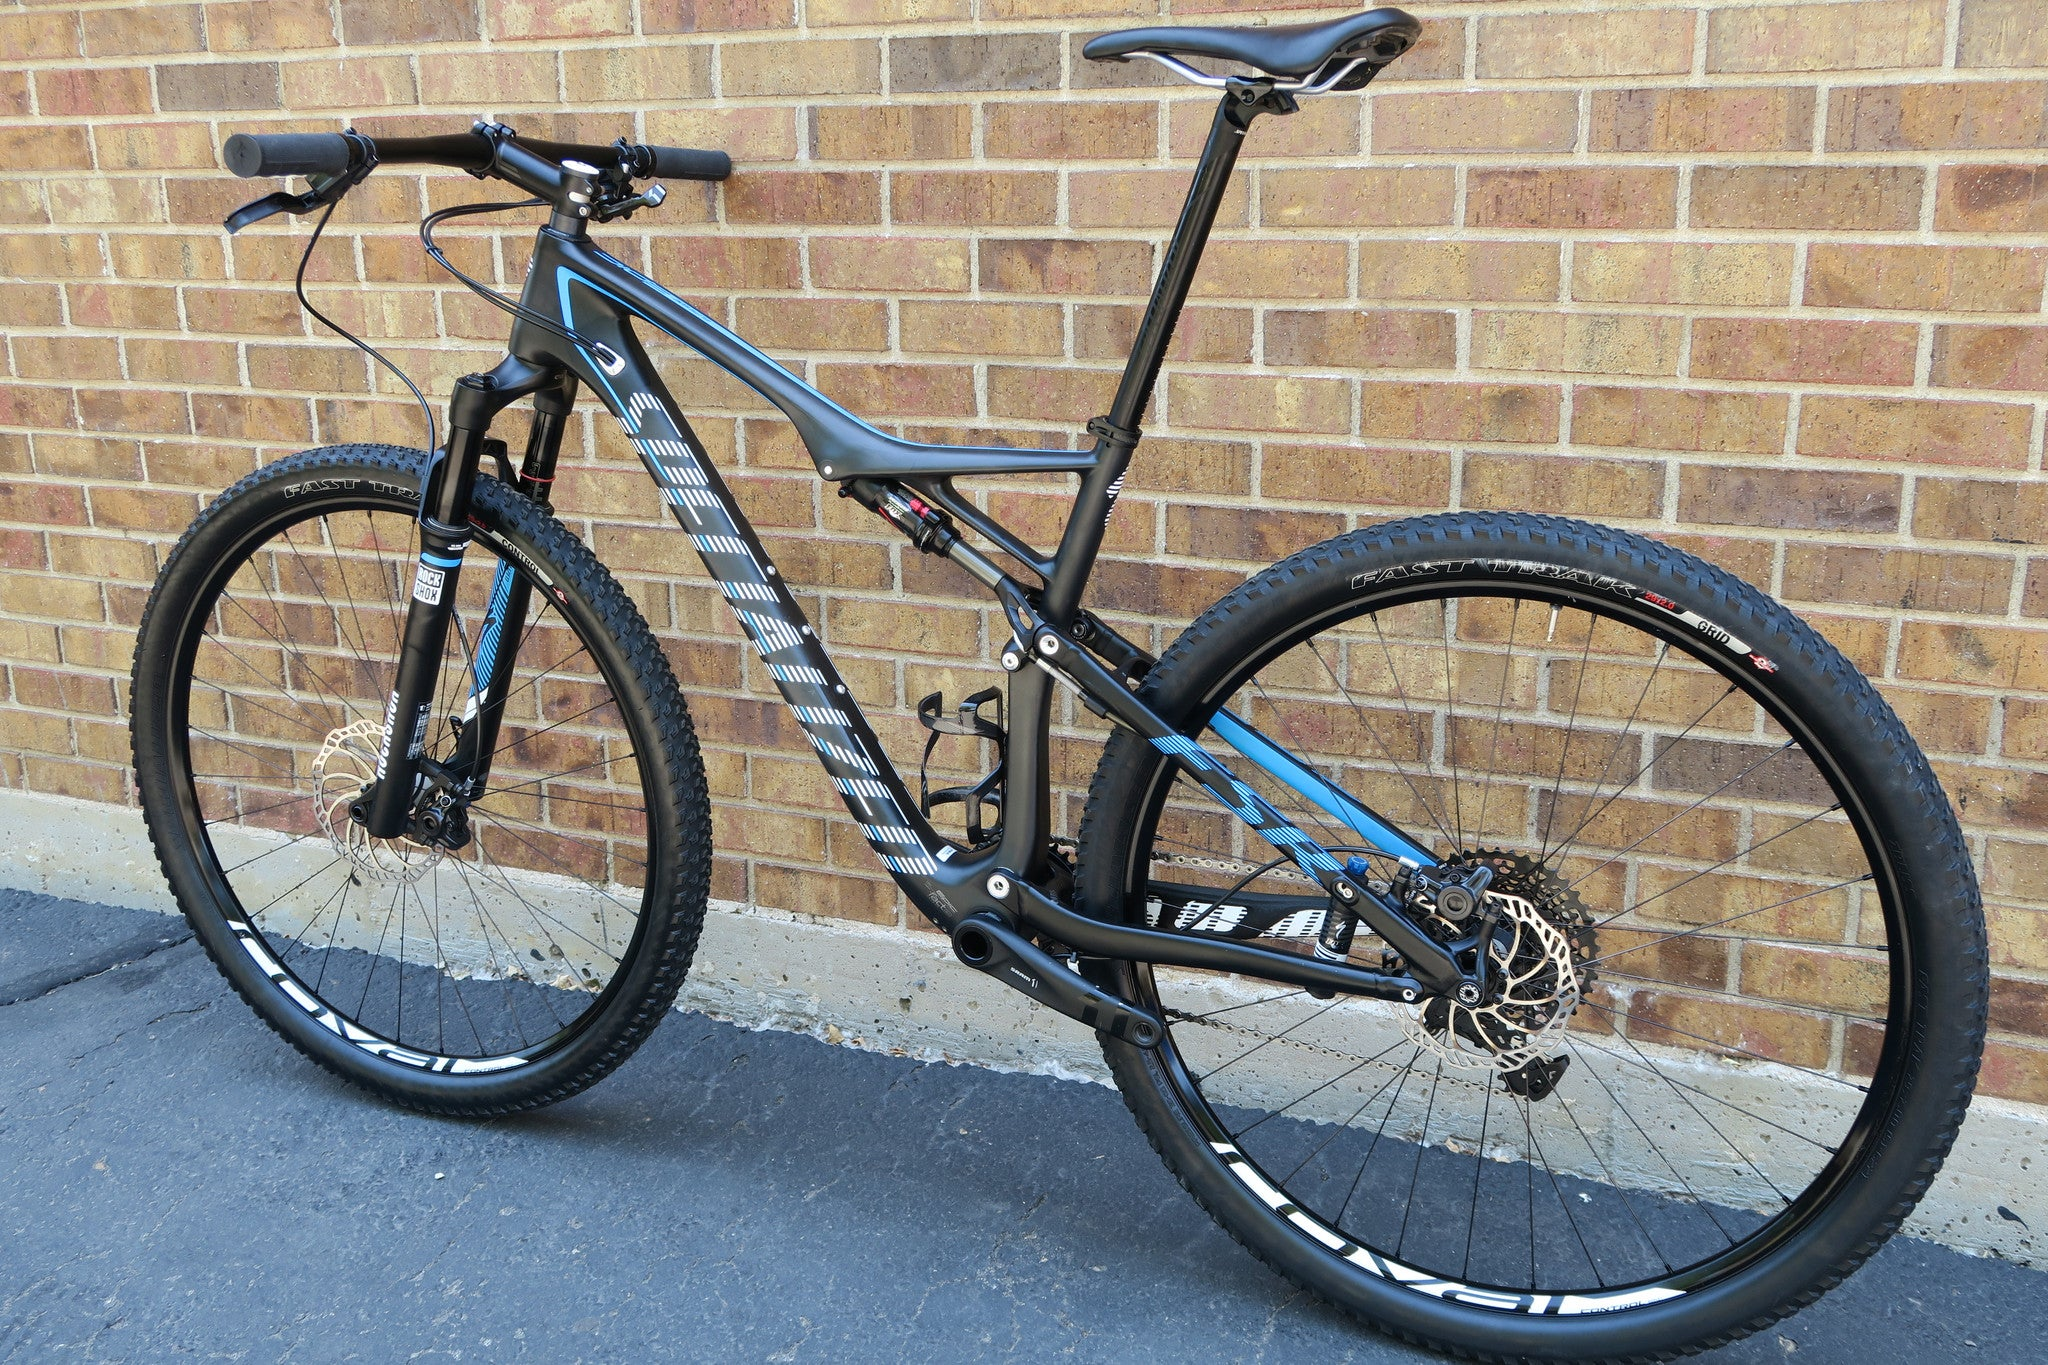 2015 SPECIALIZED EPIC ELITE CARBON WORLD CUP 29